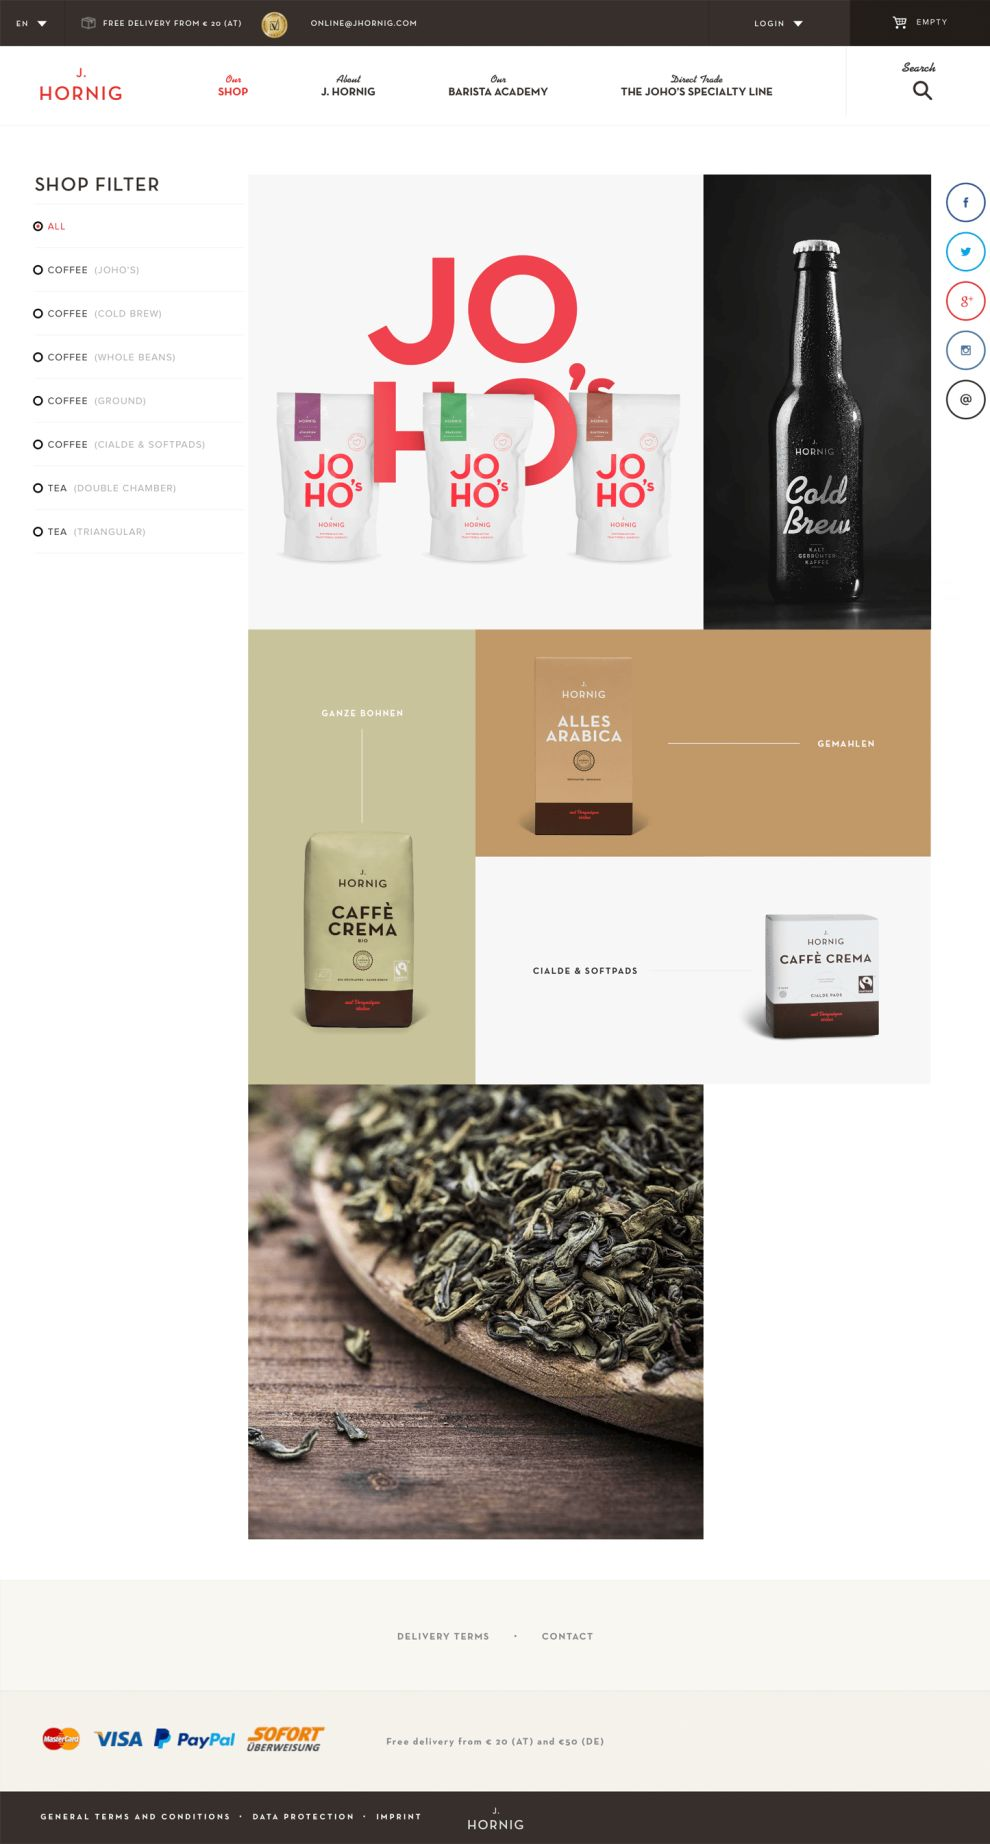 J. Hornig's Beautiful Product Page